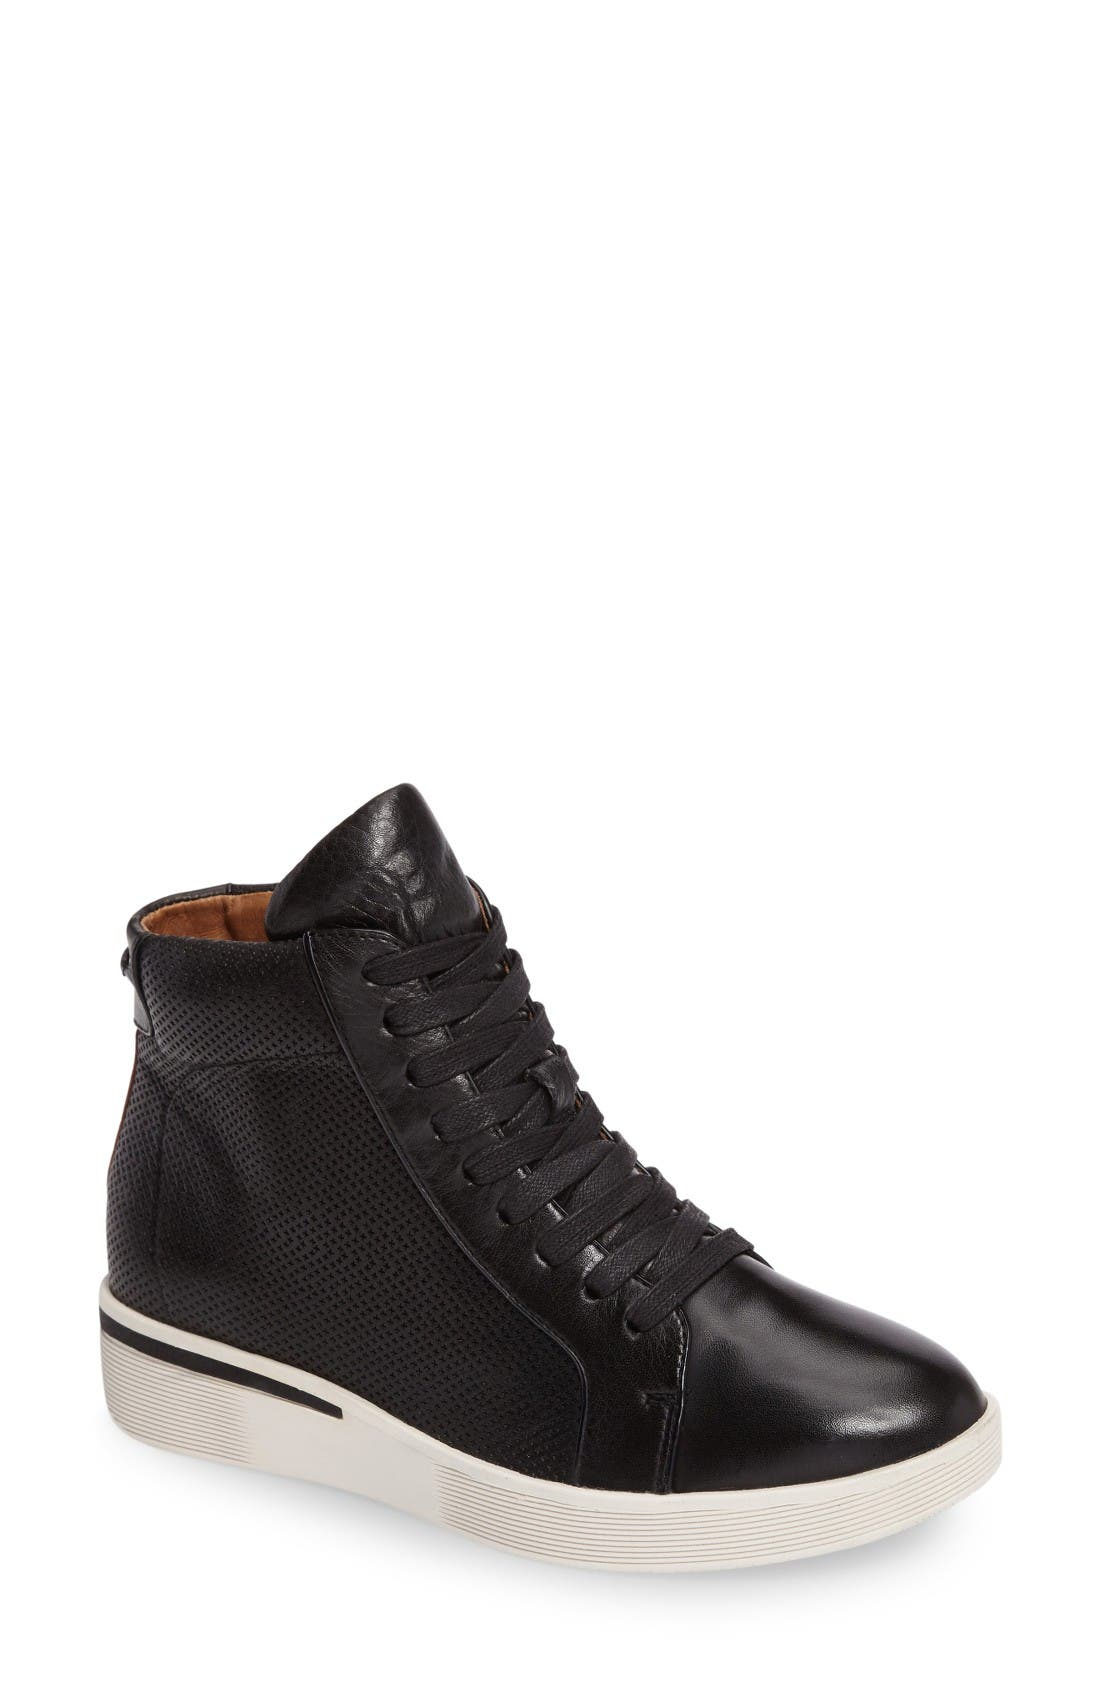 Helka High Top Sneaker,                             Main thumbnail 1, color,                             Black Leather